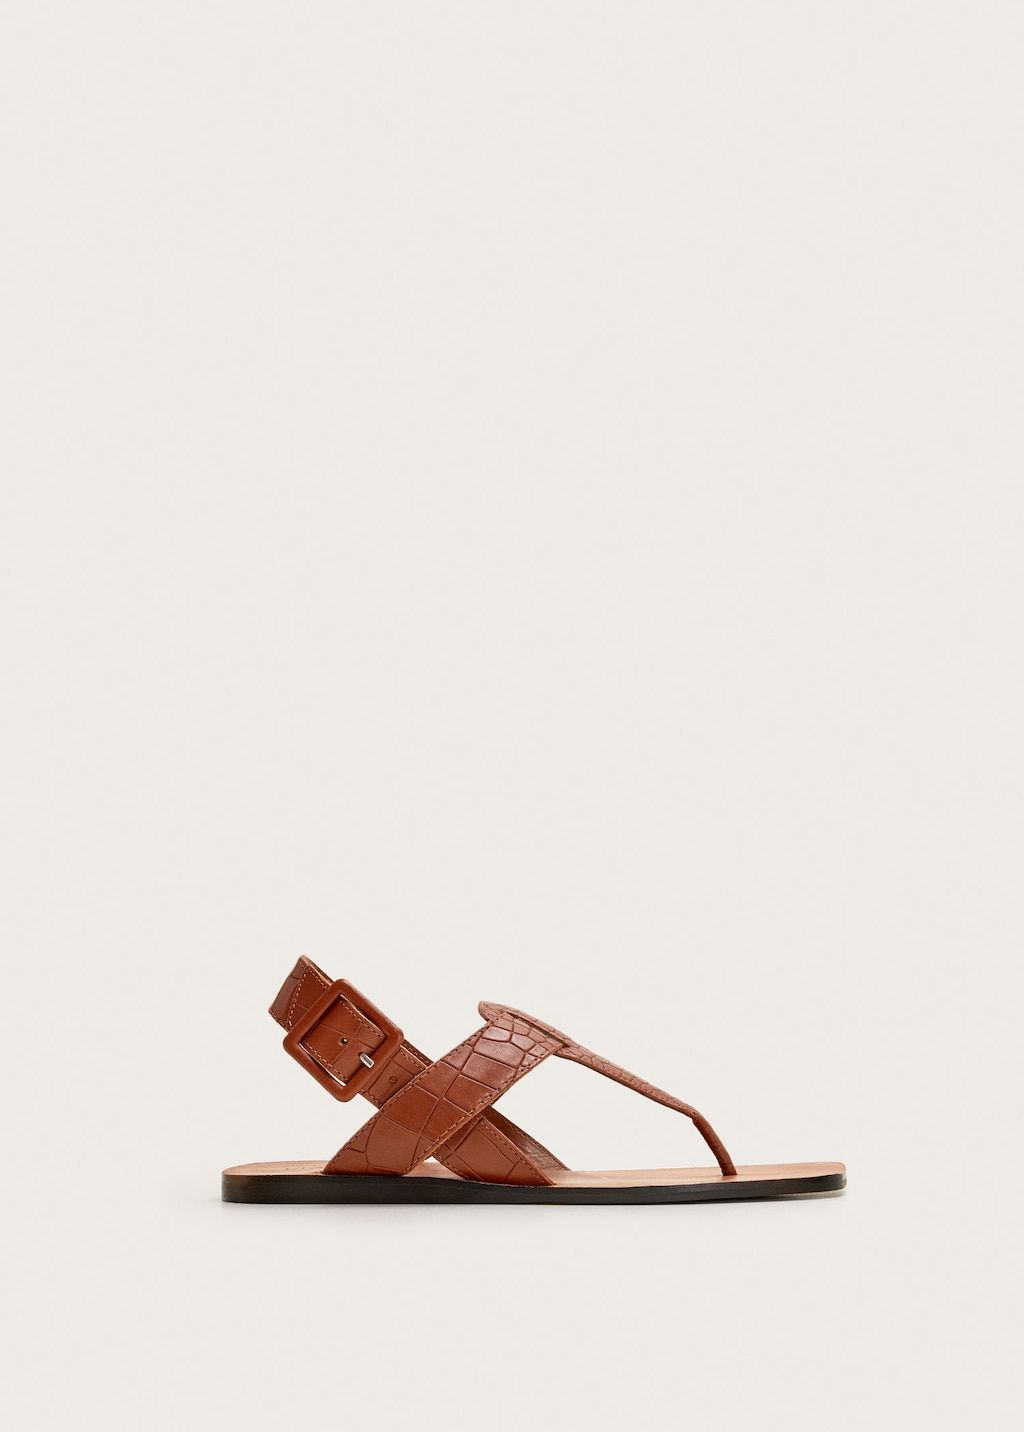 Details about Dark Brown Leather Hippie Flat Ring Toe Roman